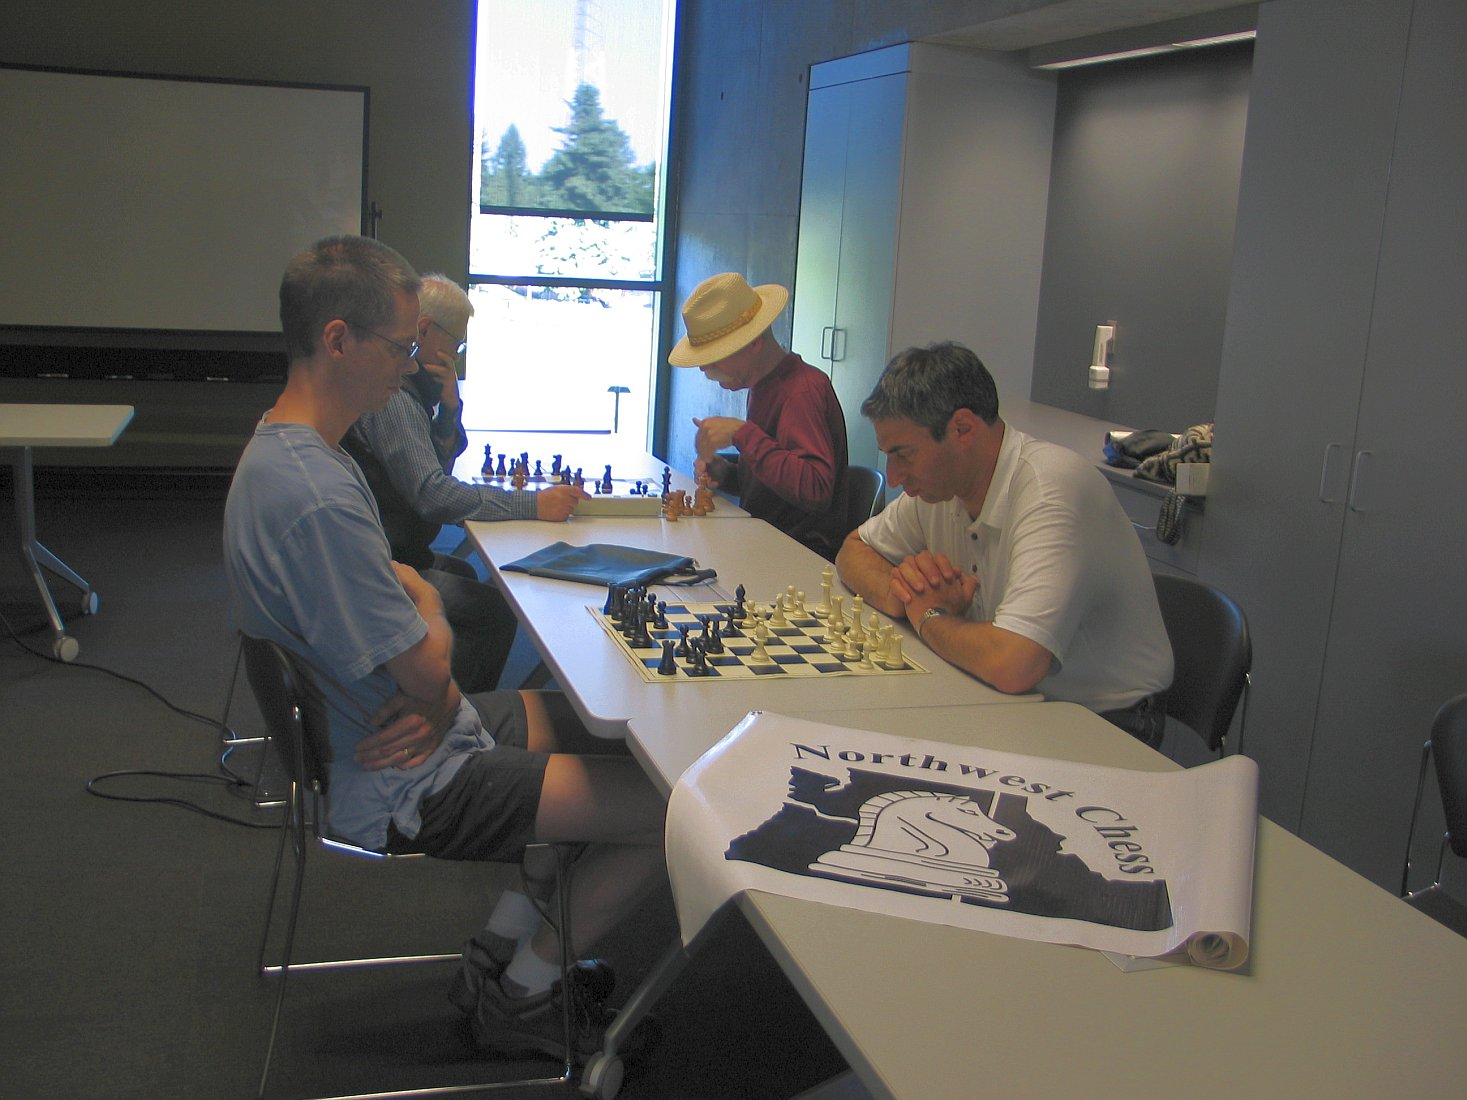 NWC Banner Visits the Vancouver Washington Chess Club on May 20, 2013.